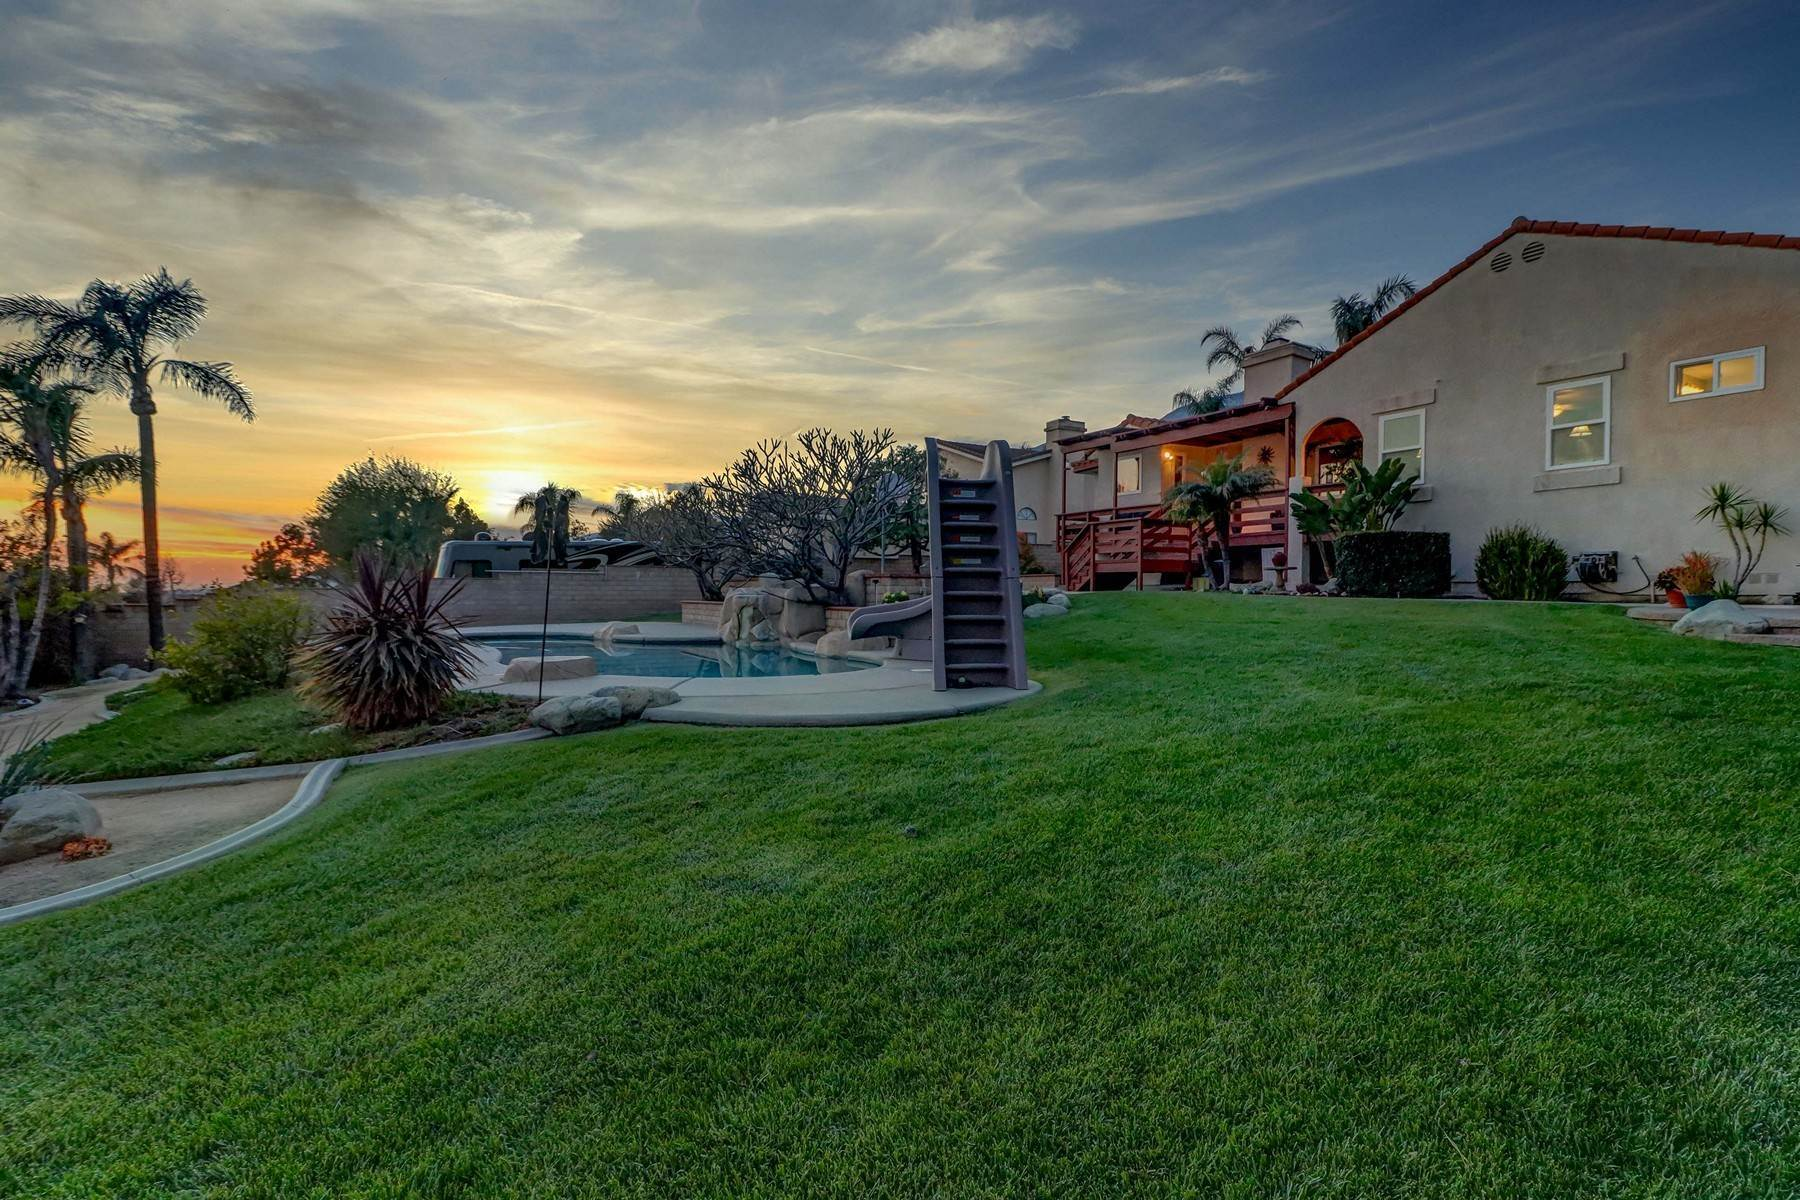 42. Single Family Homes for Sale at 10329 Vista Grove Street, Rancho Cucamonga, CA 91737 10329 Vista Grove Street Rancho Cucamonga, California 91737 United States